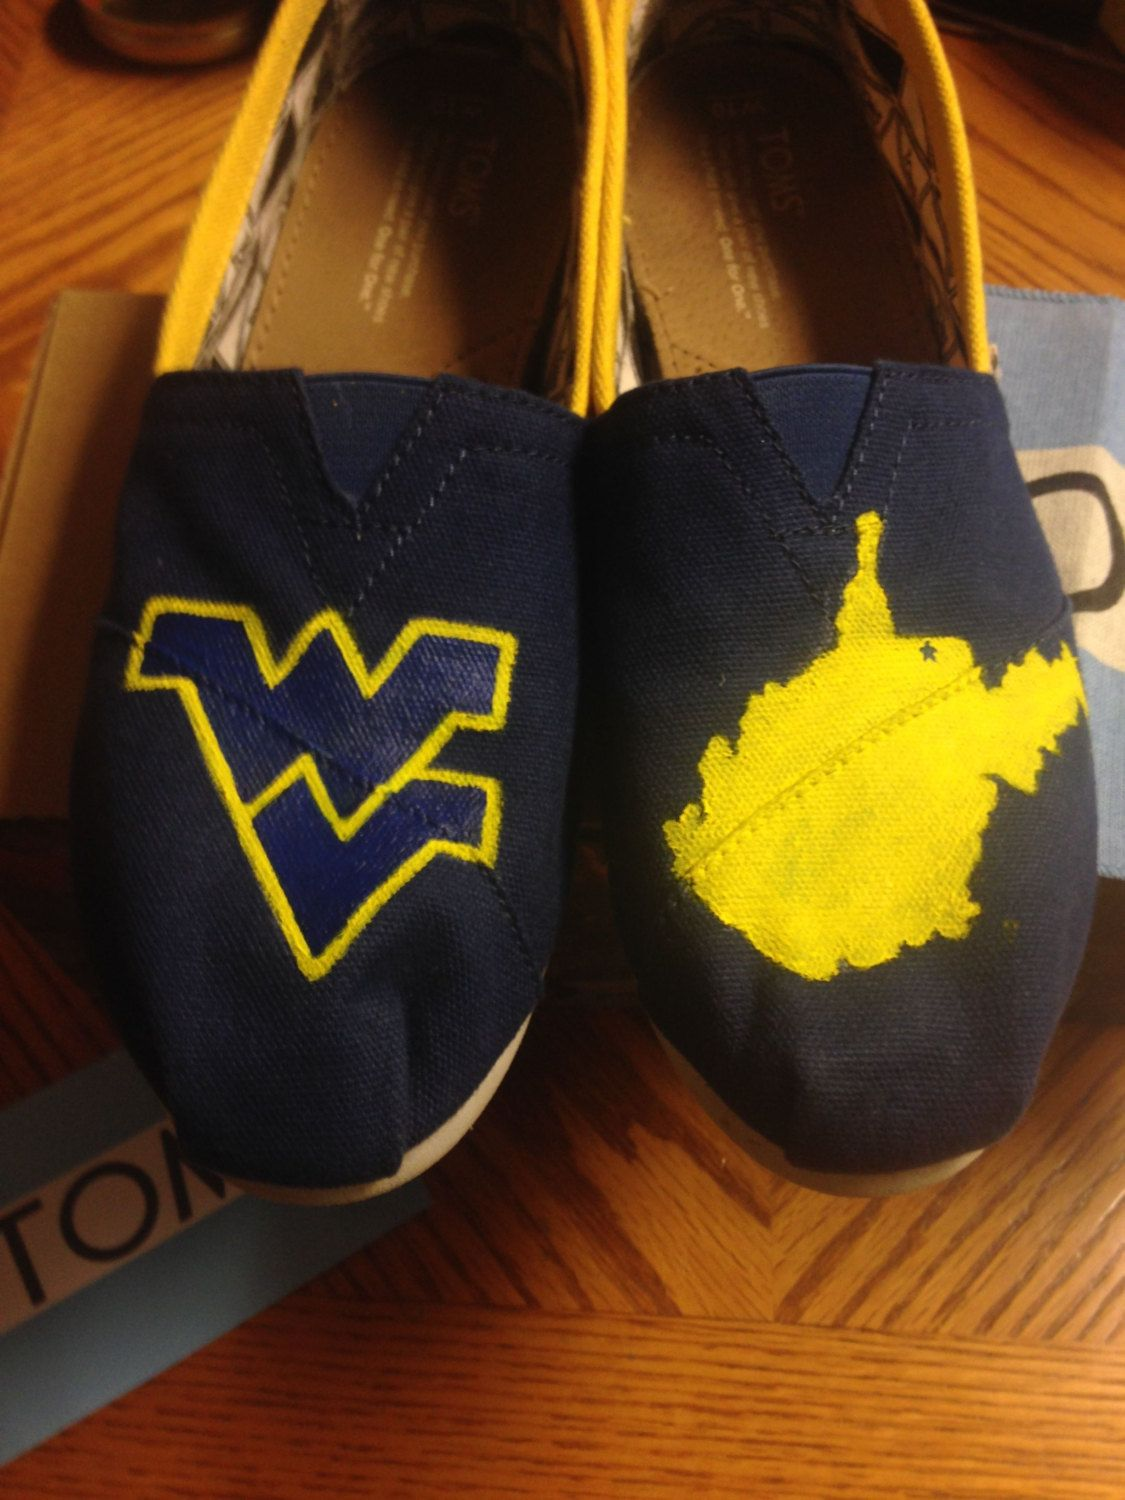 c3ce38ea73f Wvu hand painted toms shoes colorreimagined on etsy jpg 1125x1500 Wvu toms  shoes